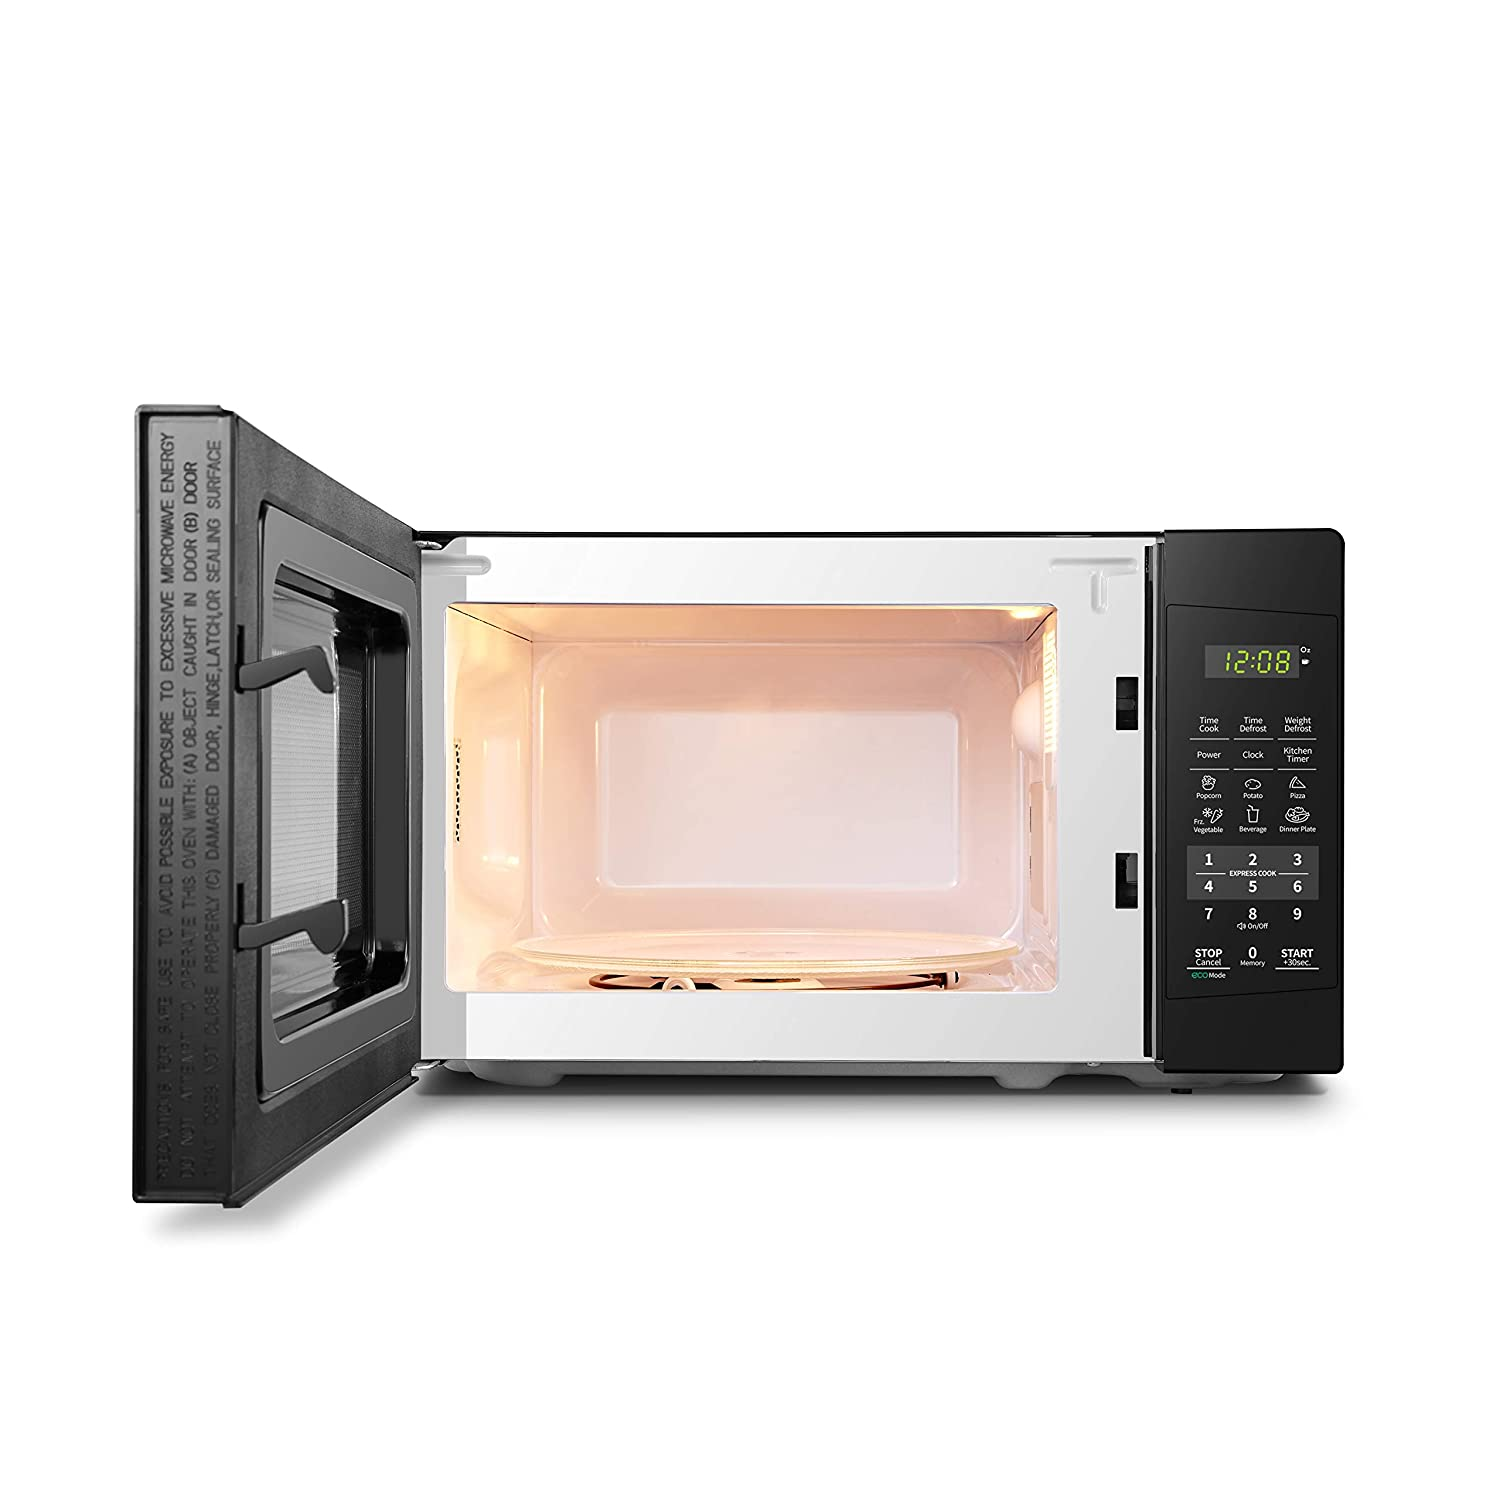 COMFEE EM720CPLPMB Countertop Microwave Oven with Sound OnOff ECO Mode and Easy OneTouch Buttons